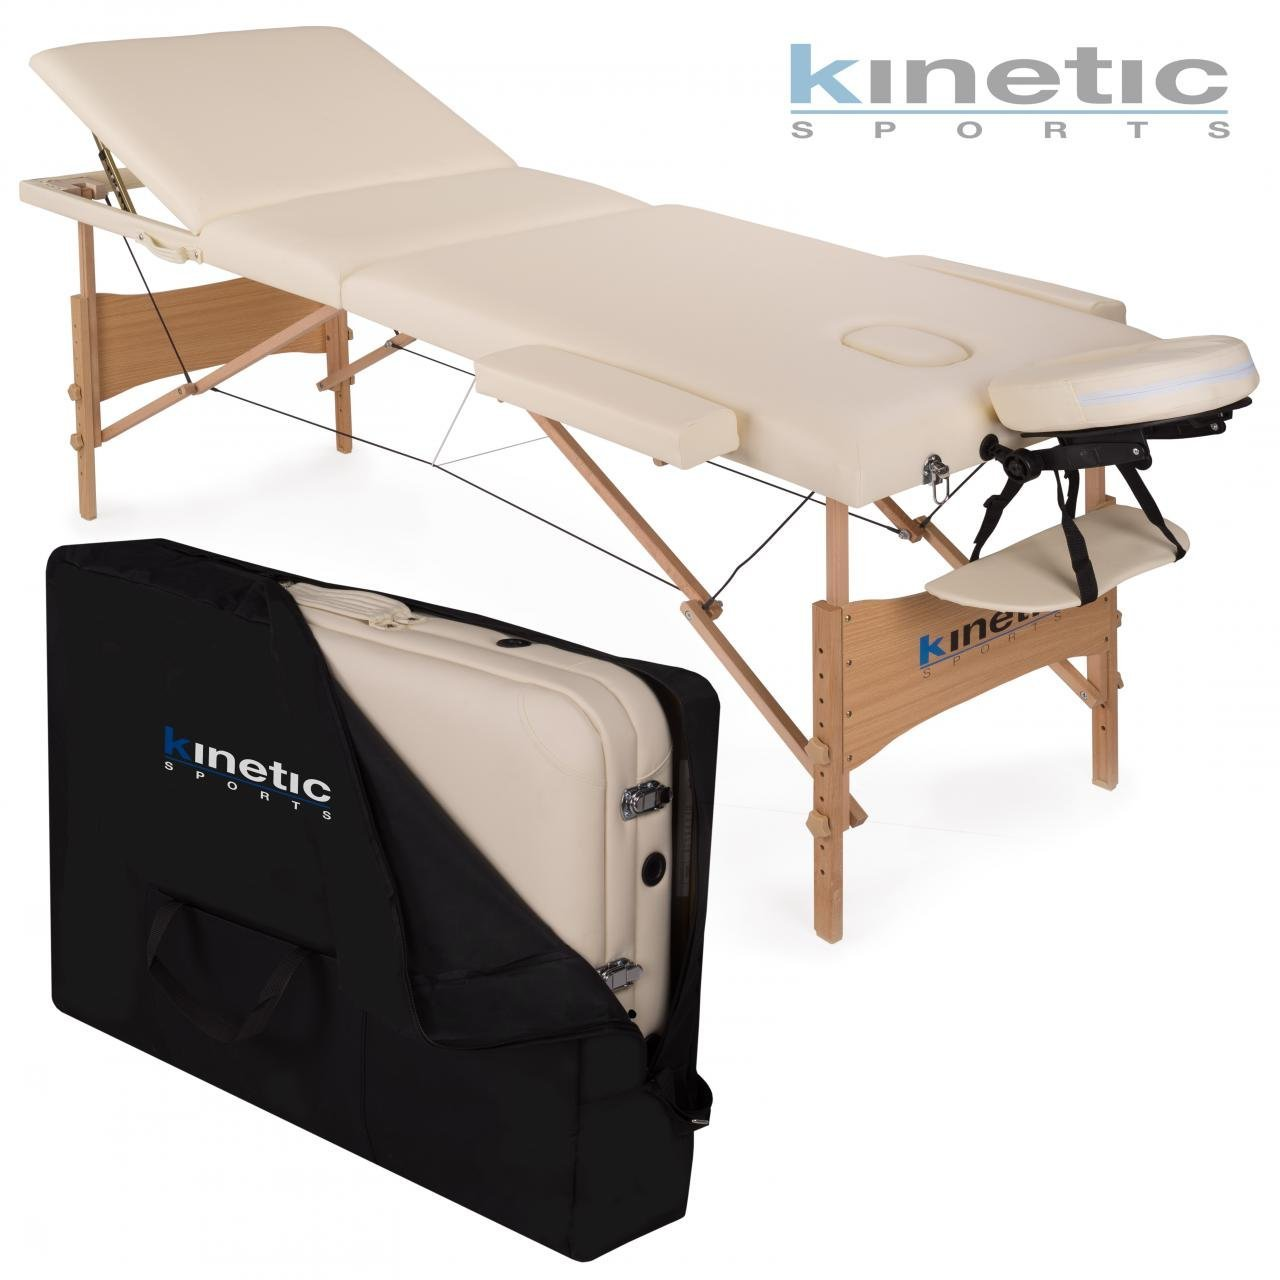 Kinetic Sports Massageliege